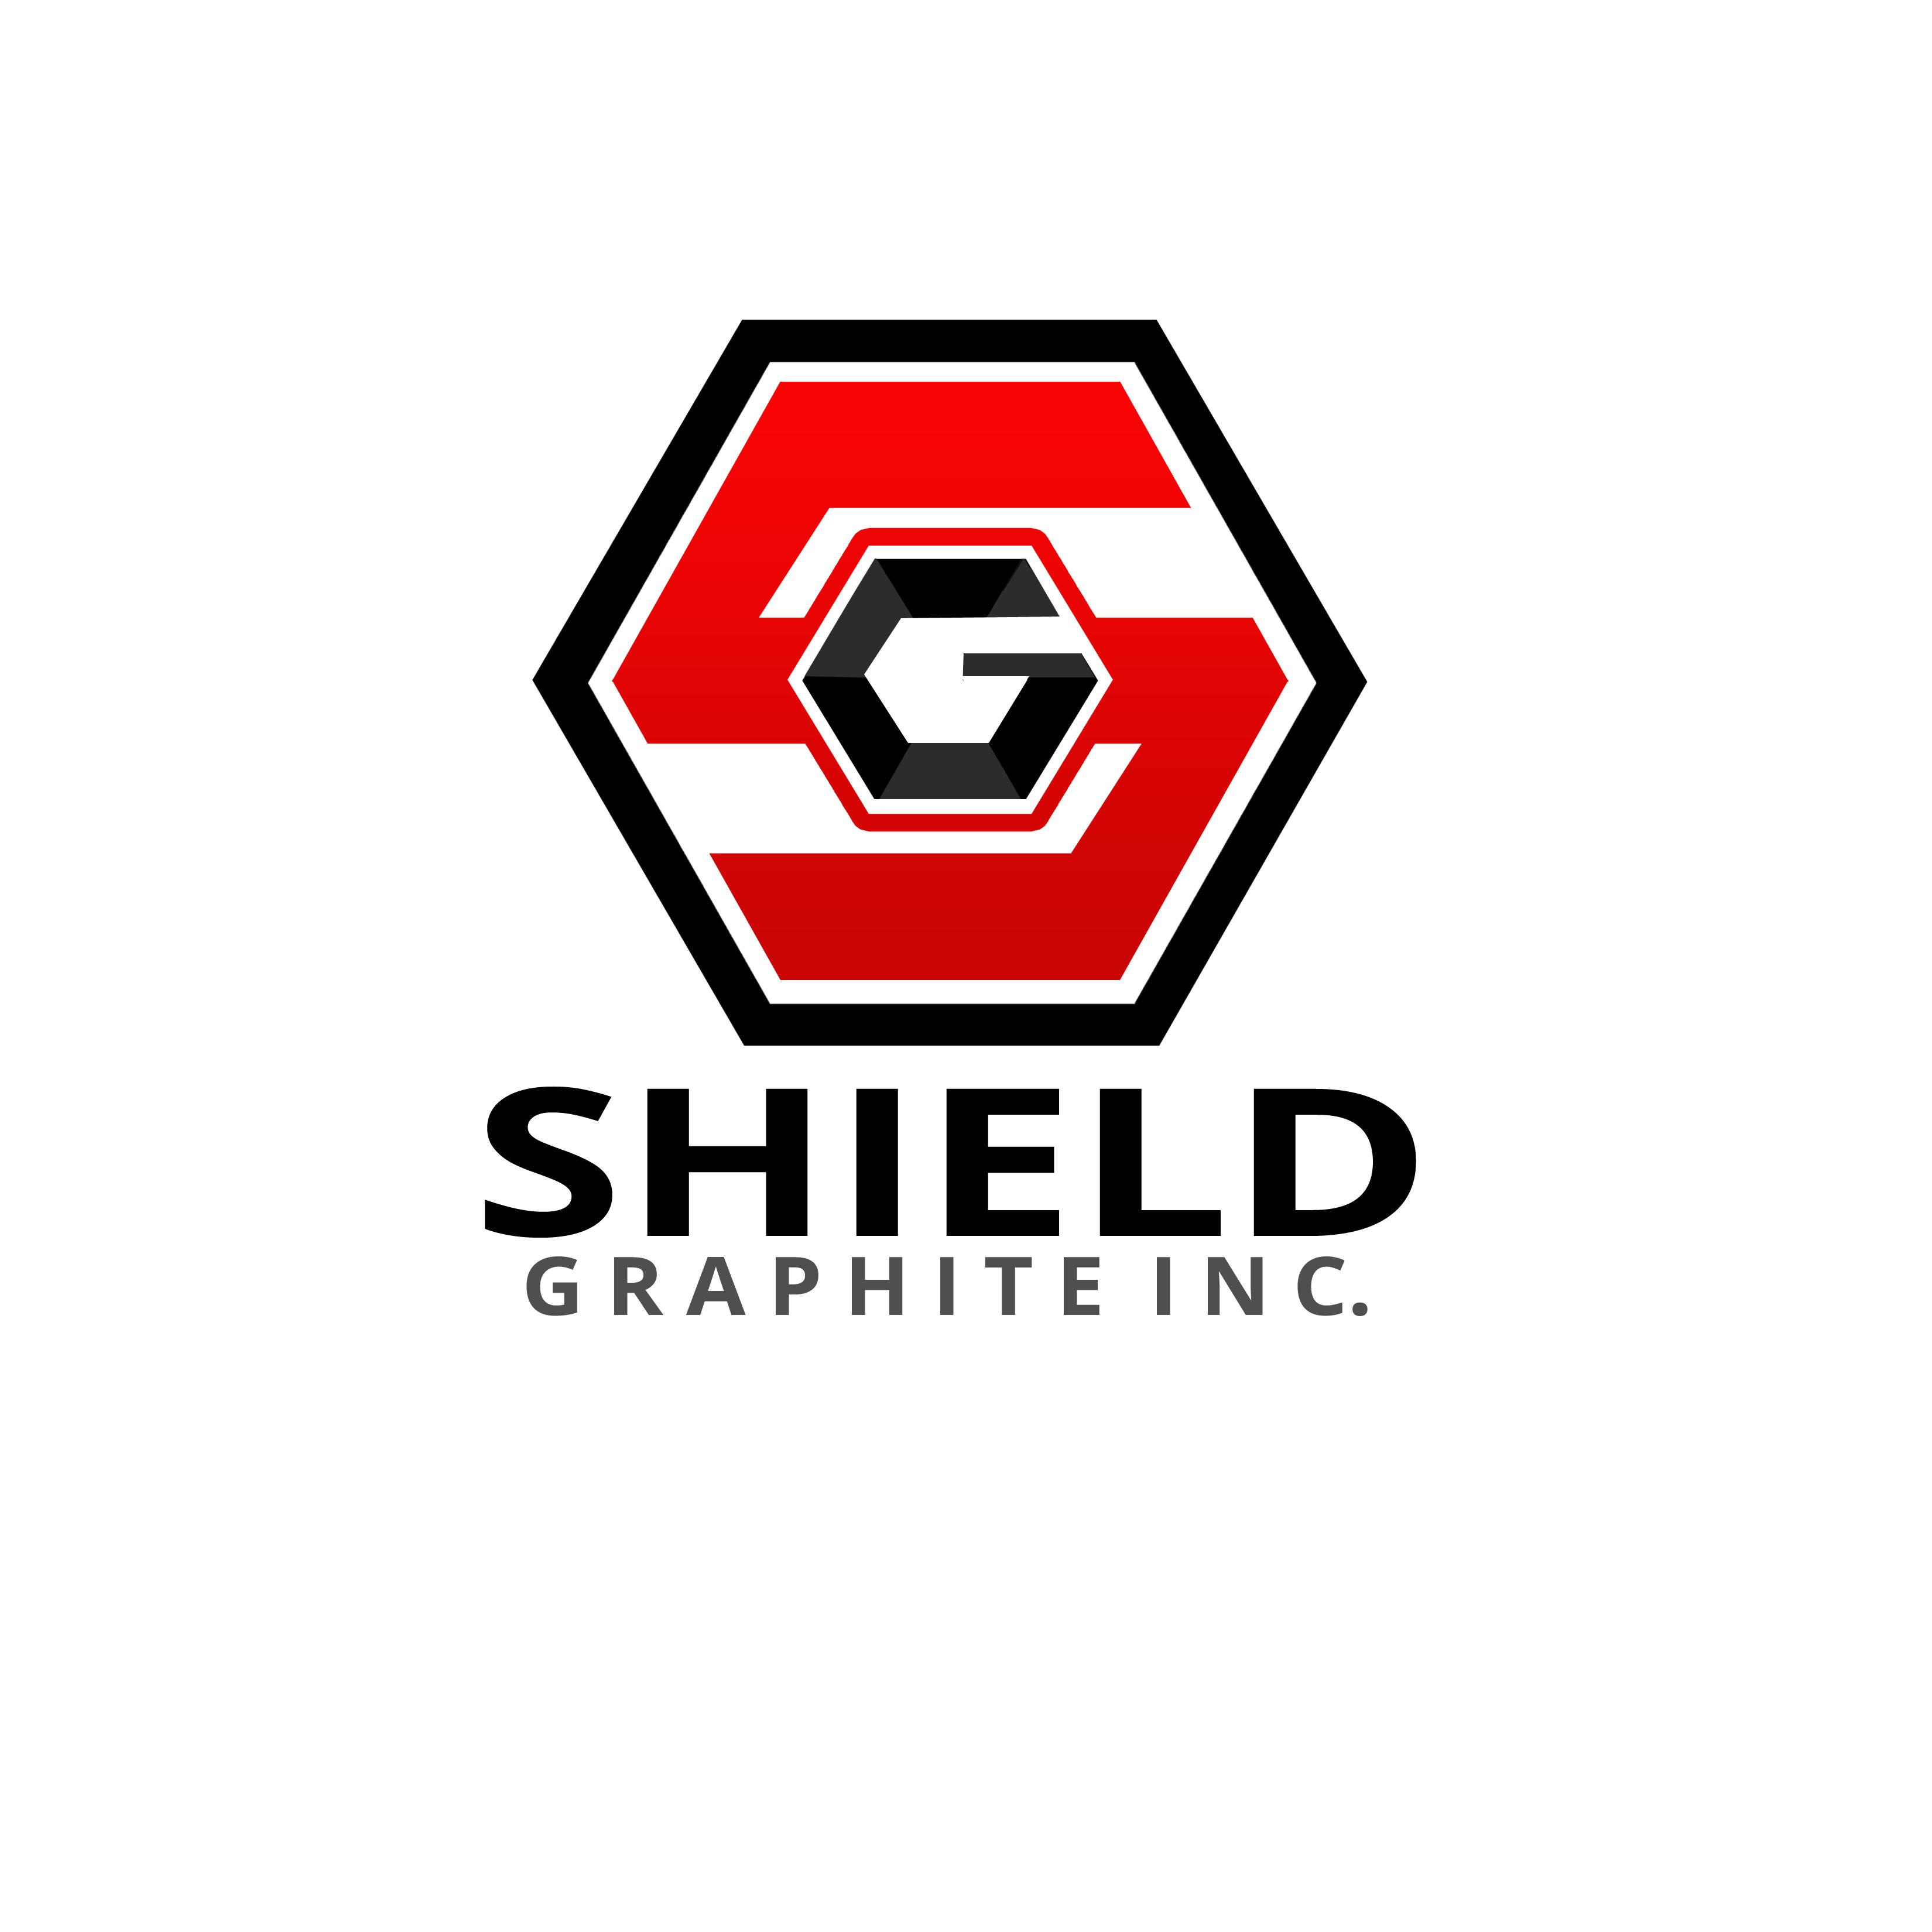 Logo Design by Allan Esclamado - Entry No. 142 in the Logo Design Contest Imaginative Logo Design for Shield Graphite Inc..